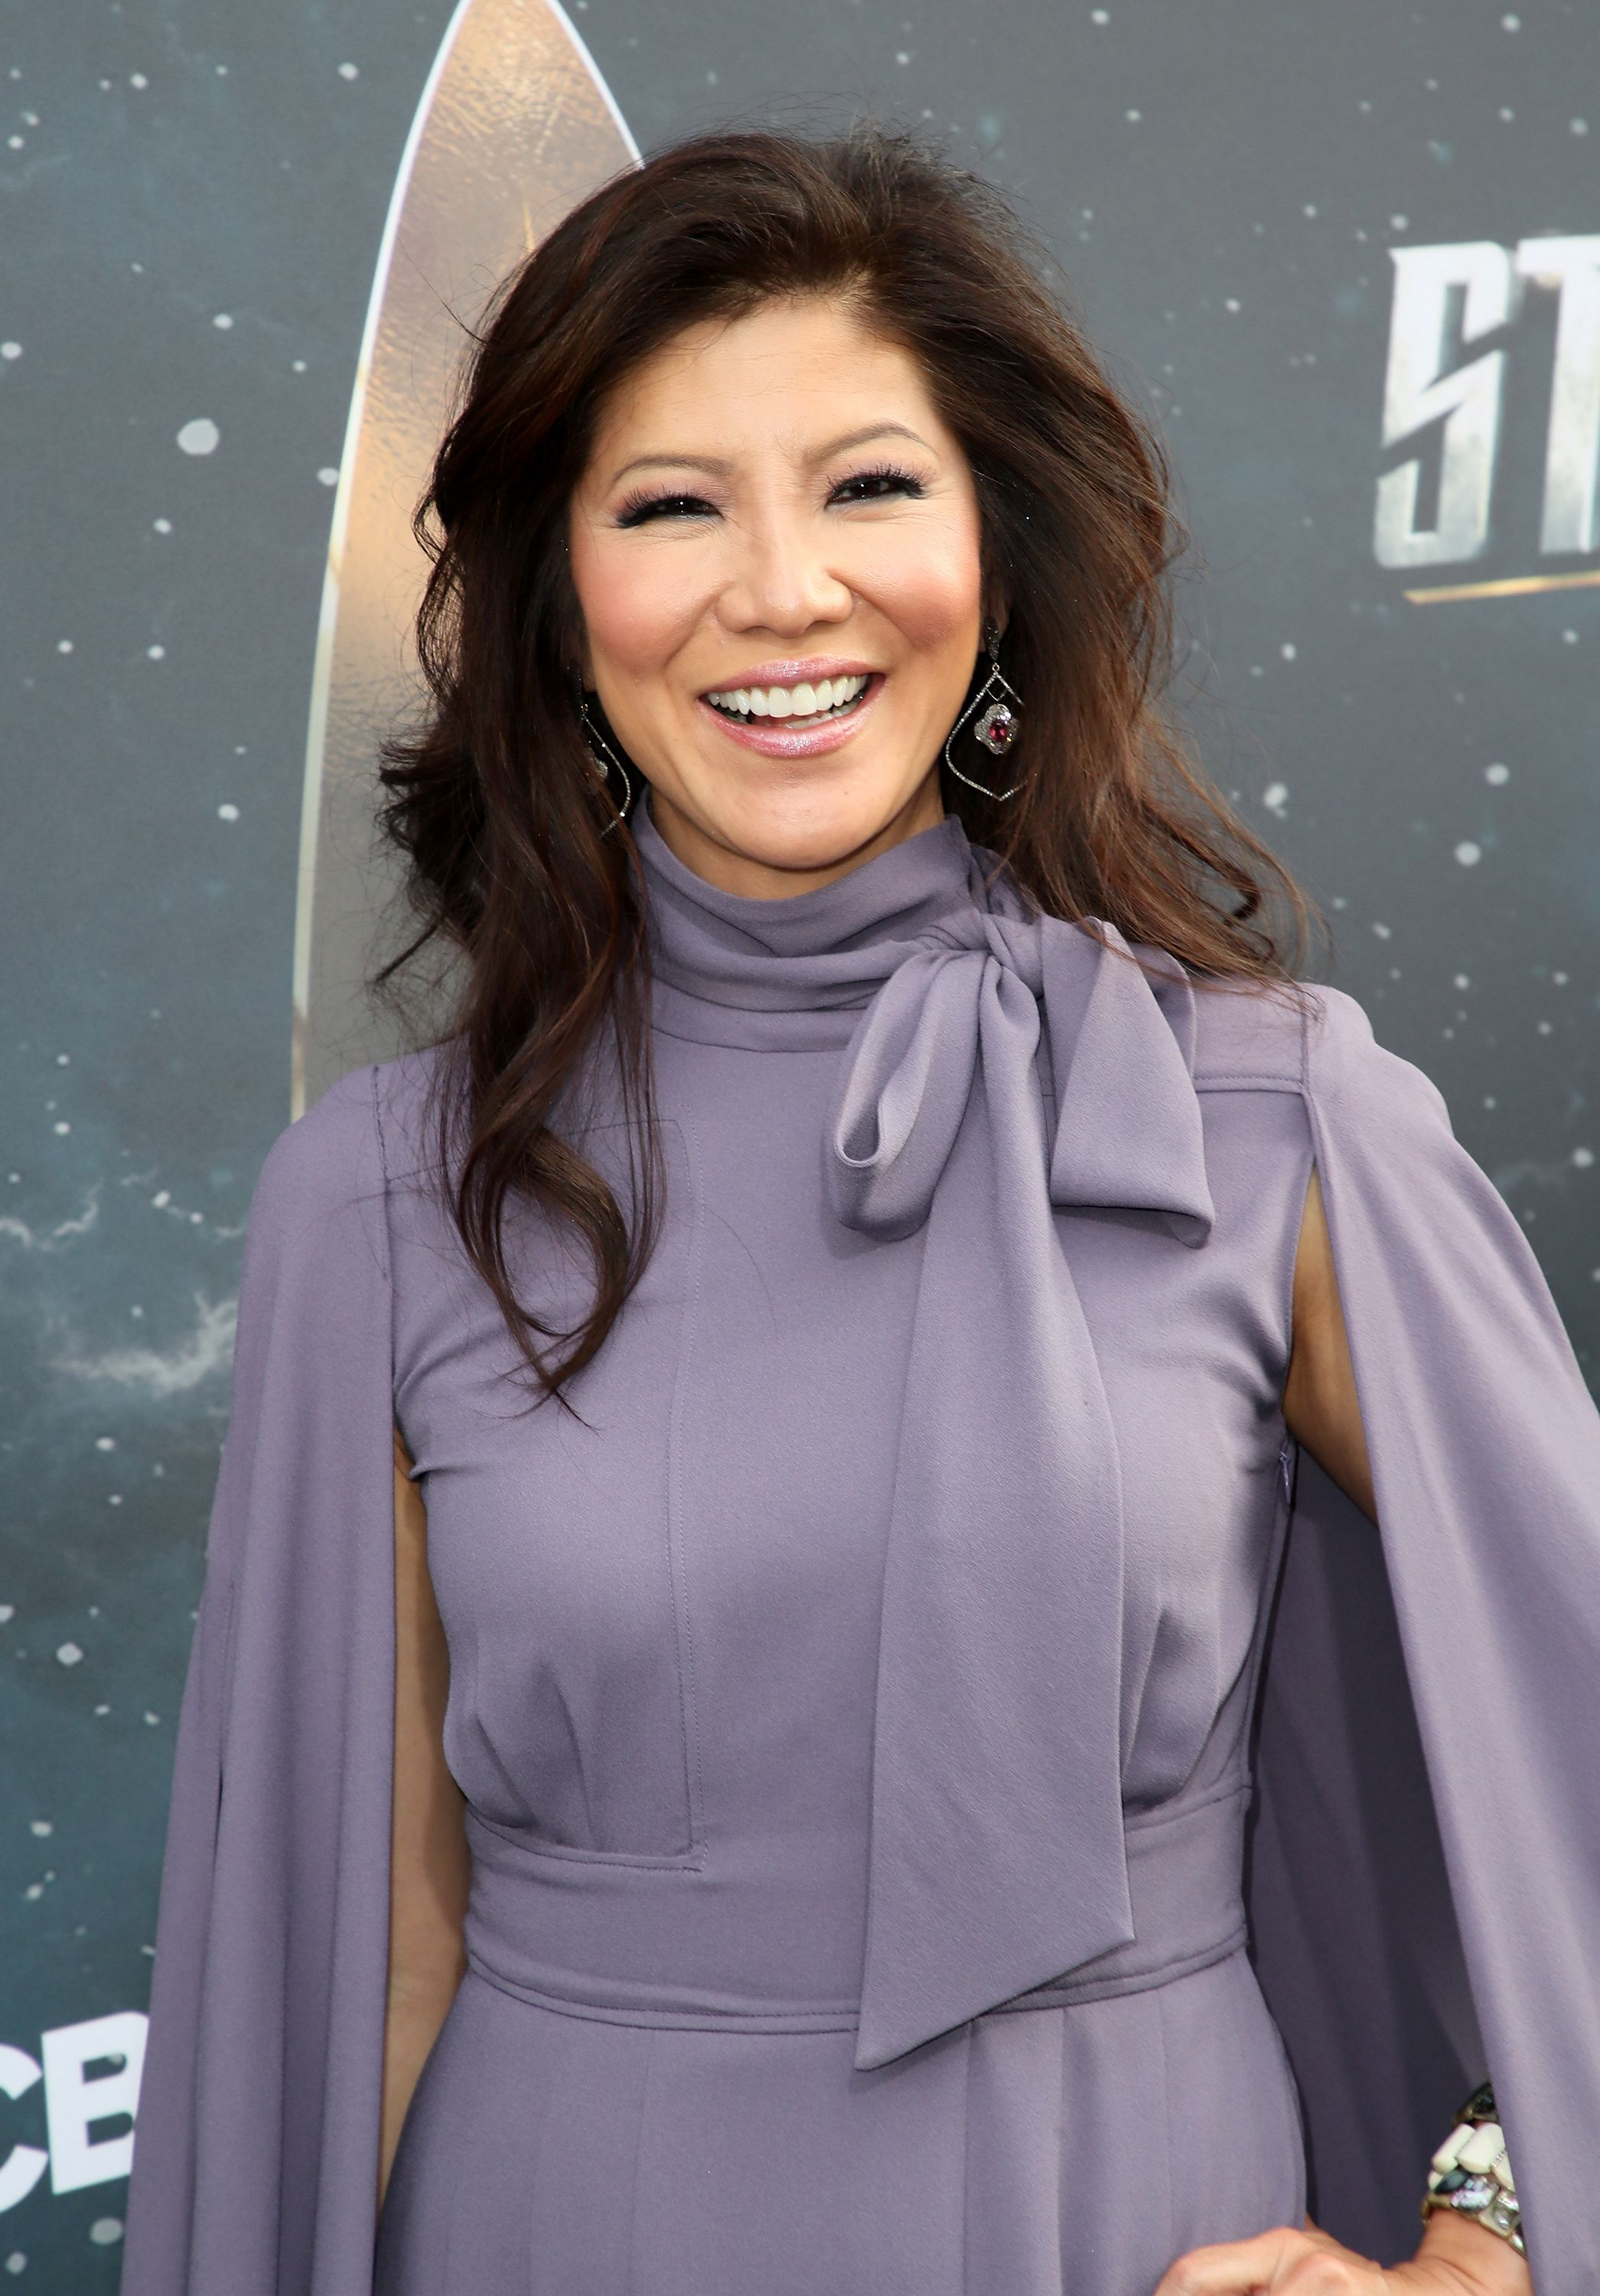 """Julie Chen during the premiere of CBS's """"Star Trek: Discovery"""" at The Cinerama Dome on September 19, 2017 in Los Angeles, California. 